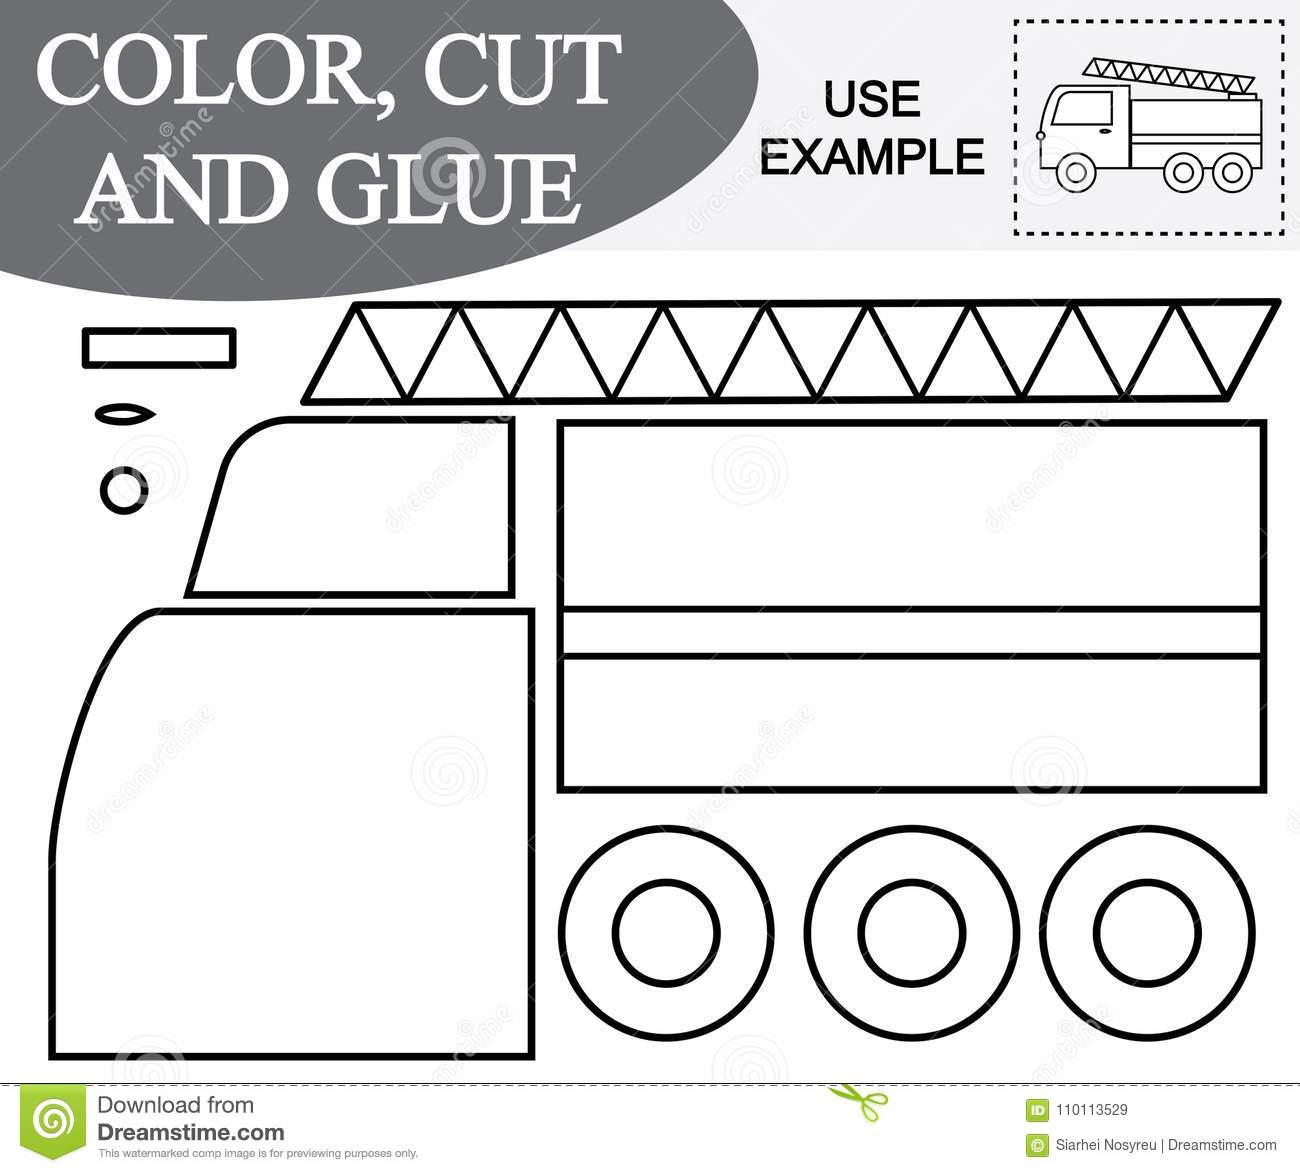 Color Cut And Glue Image Of Fire Escape Car Educational